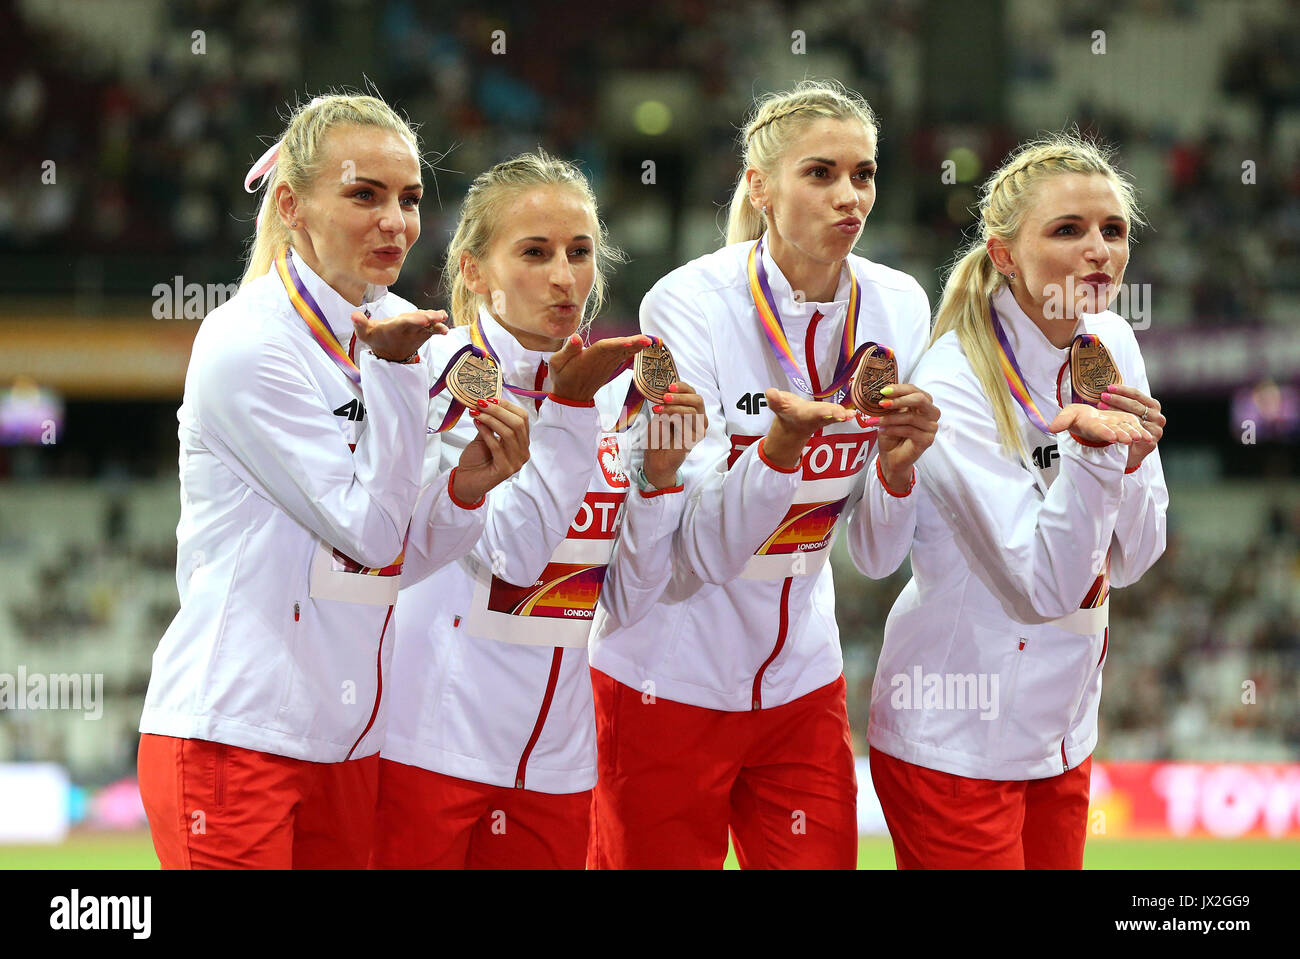 Poland Women's 4x400m relay final team (left to right) Justyna Swiety, Malgorzata Holub, Iga Baumgart and Alekandra Gaworska with their bronze medals during day ten of the 2017 IAAF World Championships at the London Stadium. PRESS ASSOCIATION Photo. Picture date: Sunday August 13, 2017. See PA story ATHLETICS World. Photo credit should read: Jonathan Brady/PA Wire. RESTRICTIONS: Editorial use only. No transmission of sound or moving images and no video simulation. - Stock Image